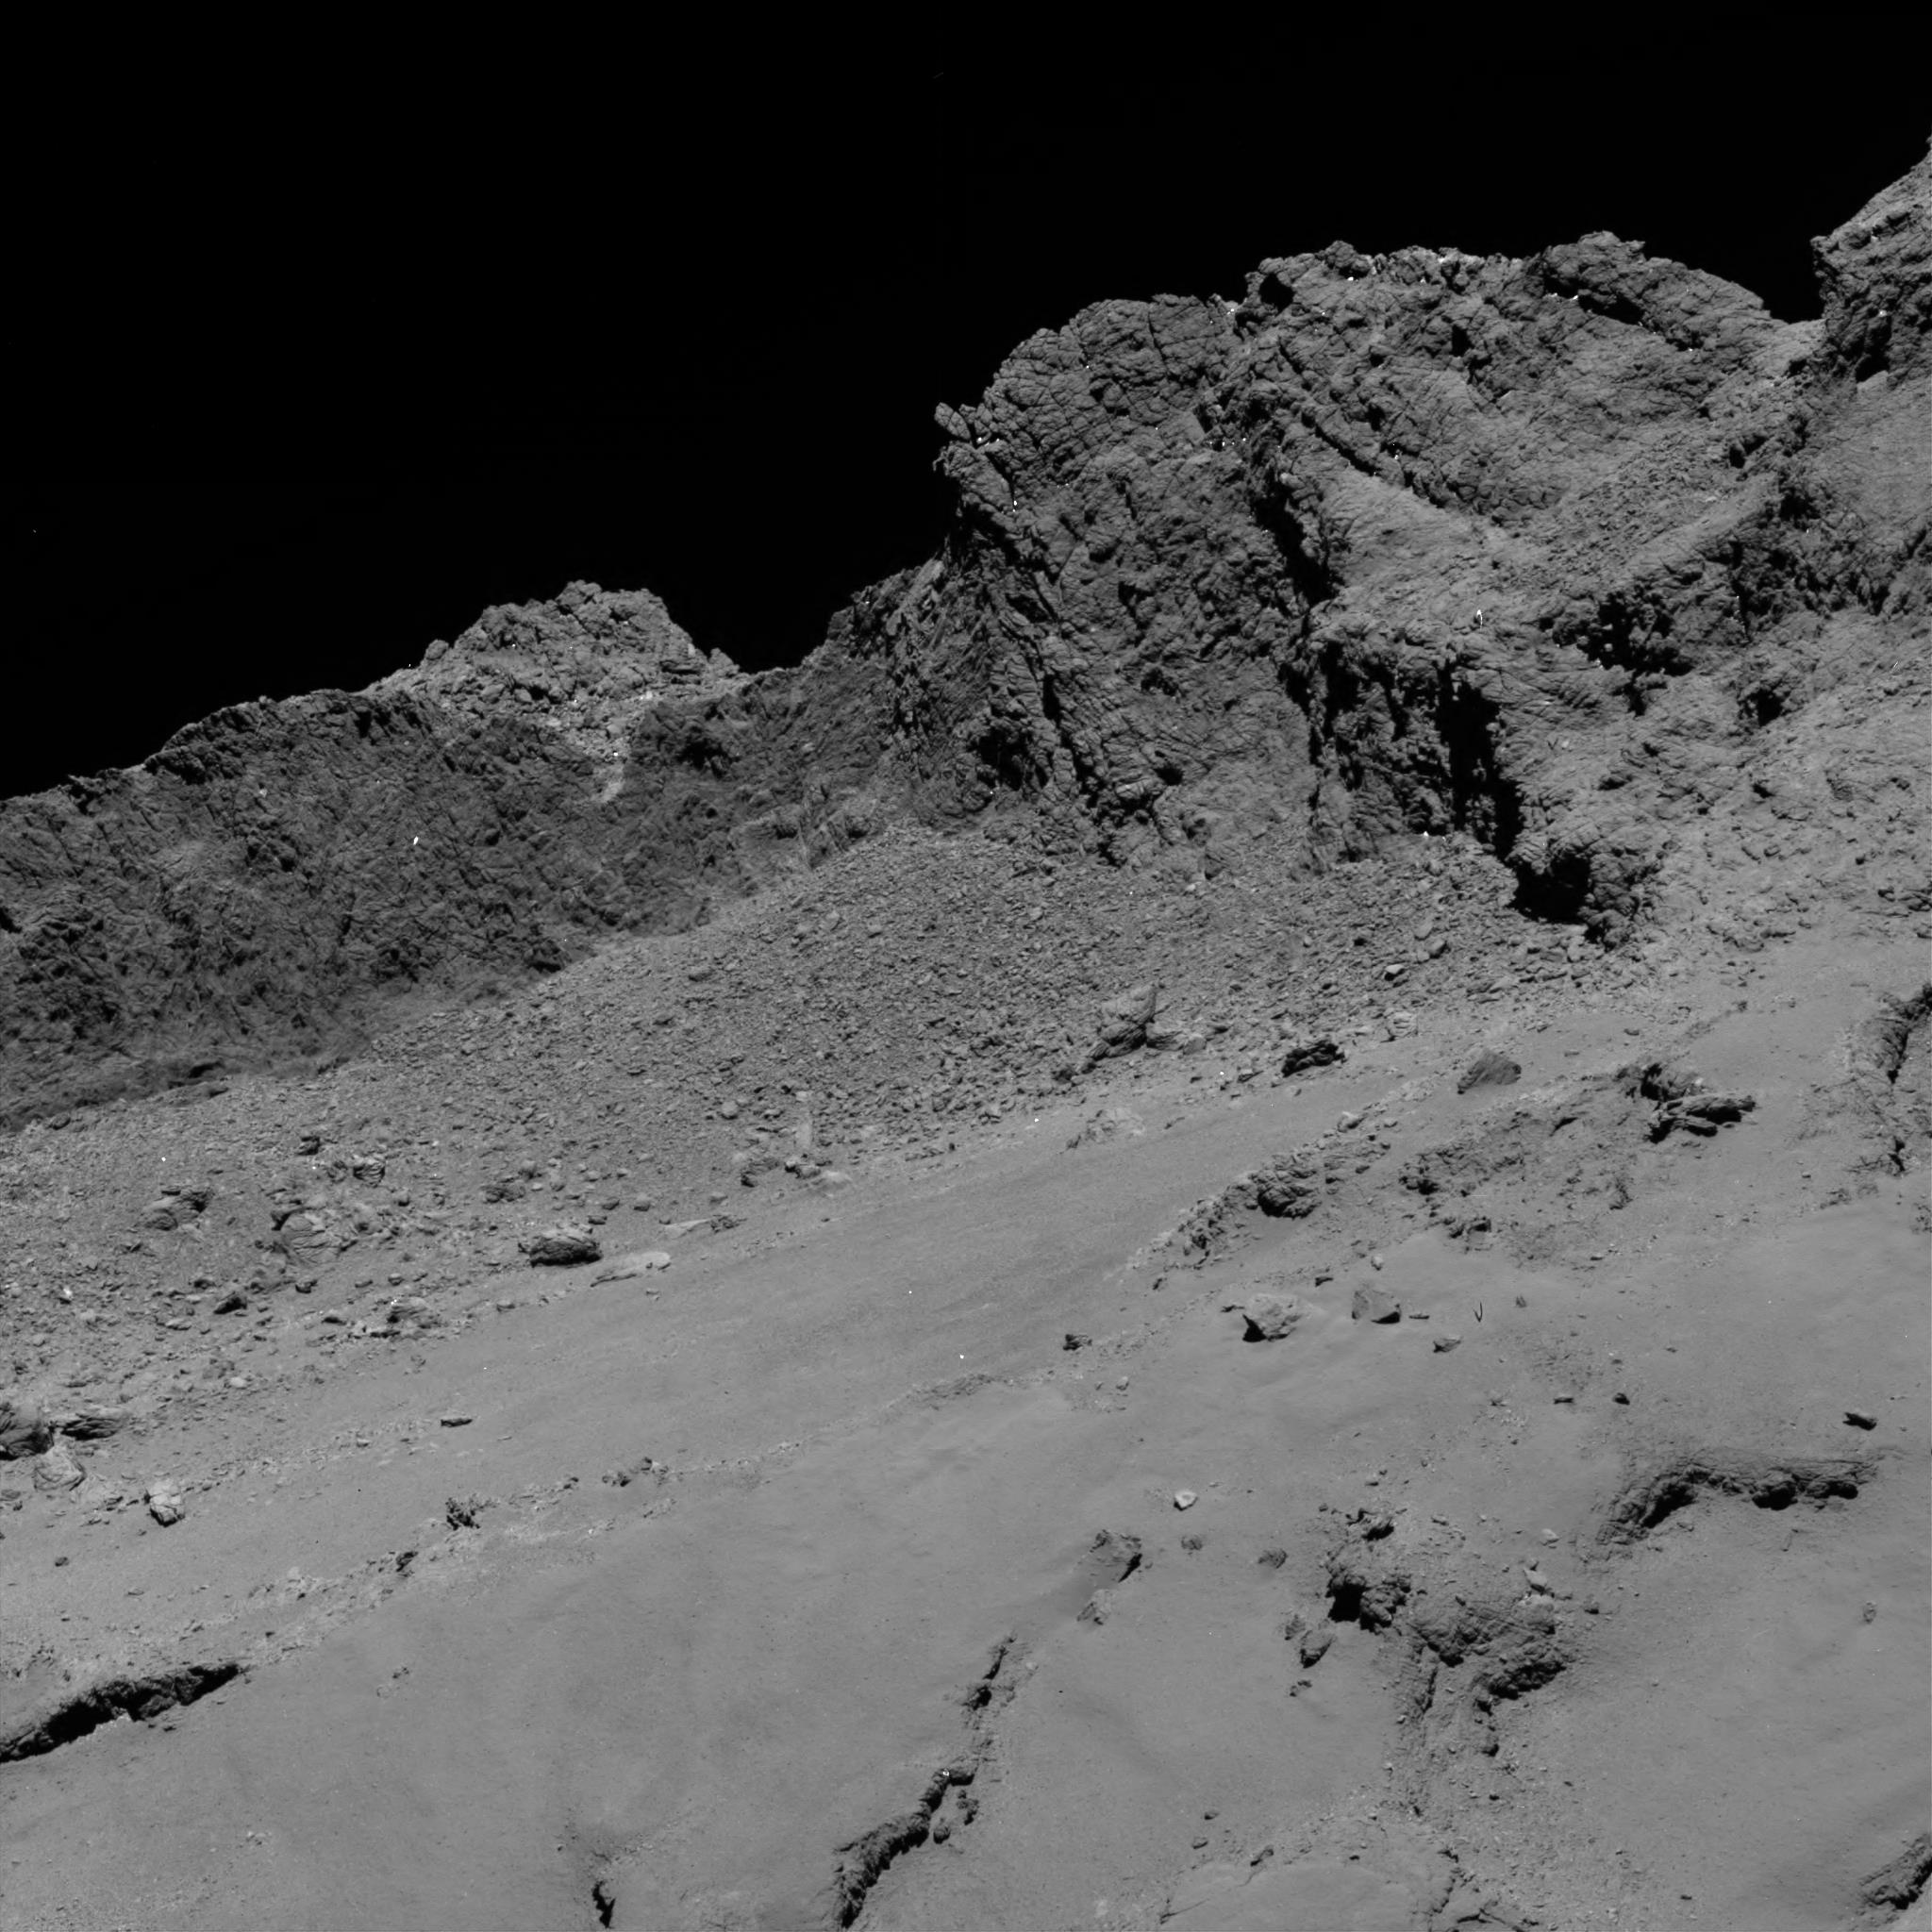 La cometa vista da 16 km con la narrow-camera dello strumento Osiris. Crediti: ESA/Rosetta/MPS for OSIRIS Team